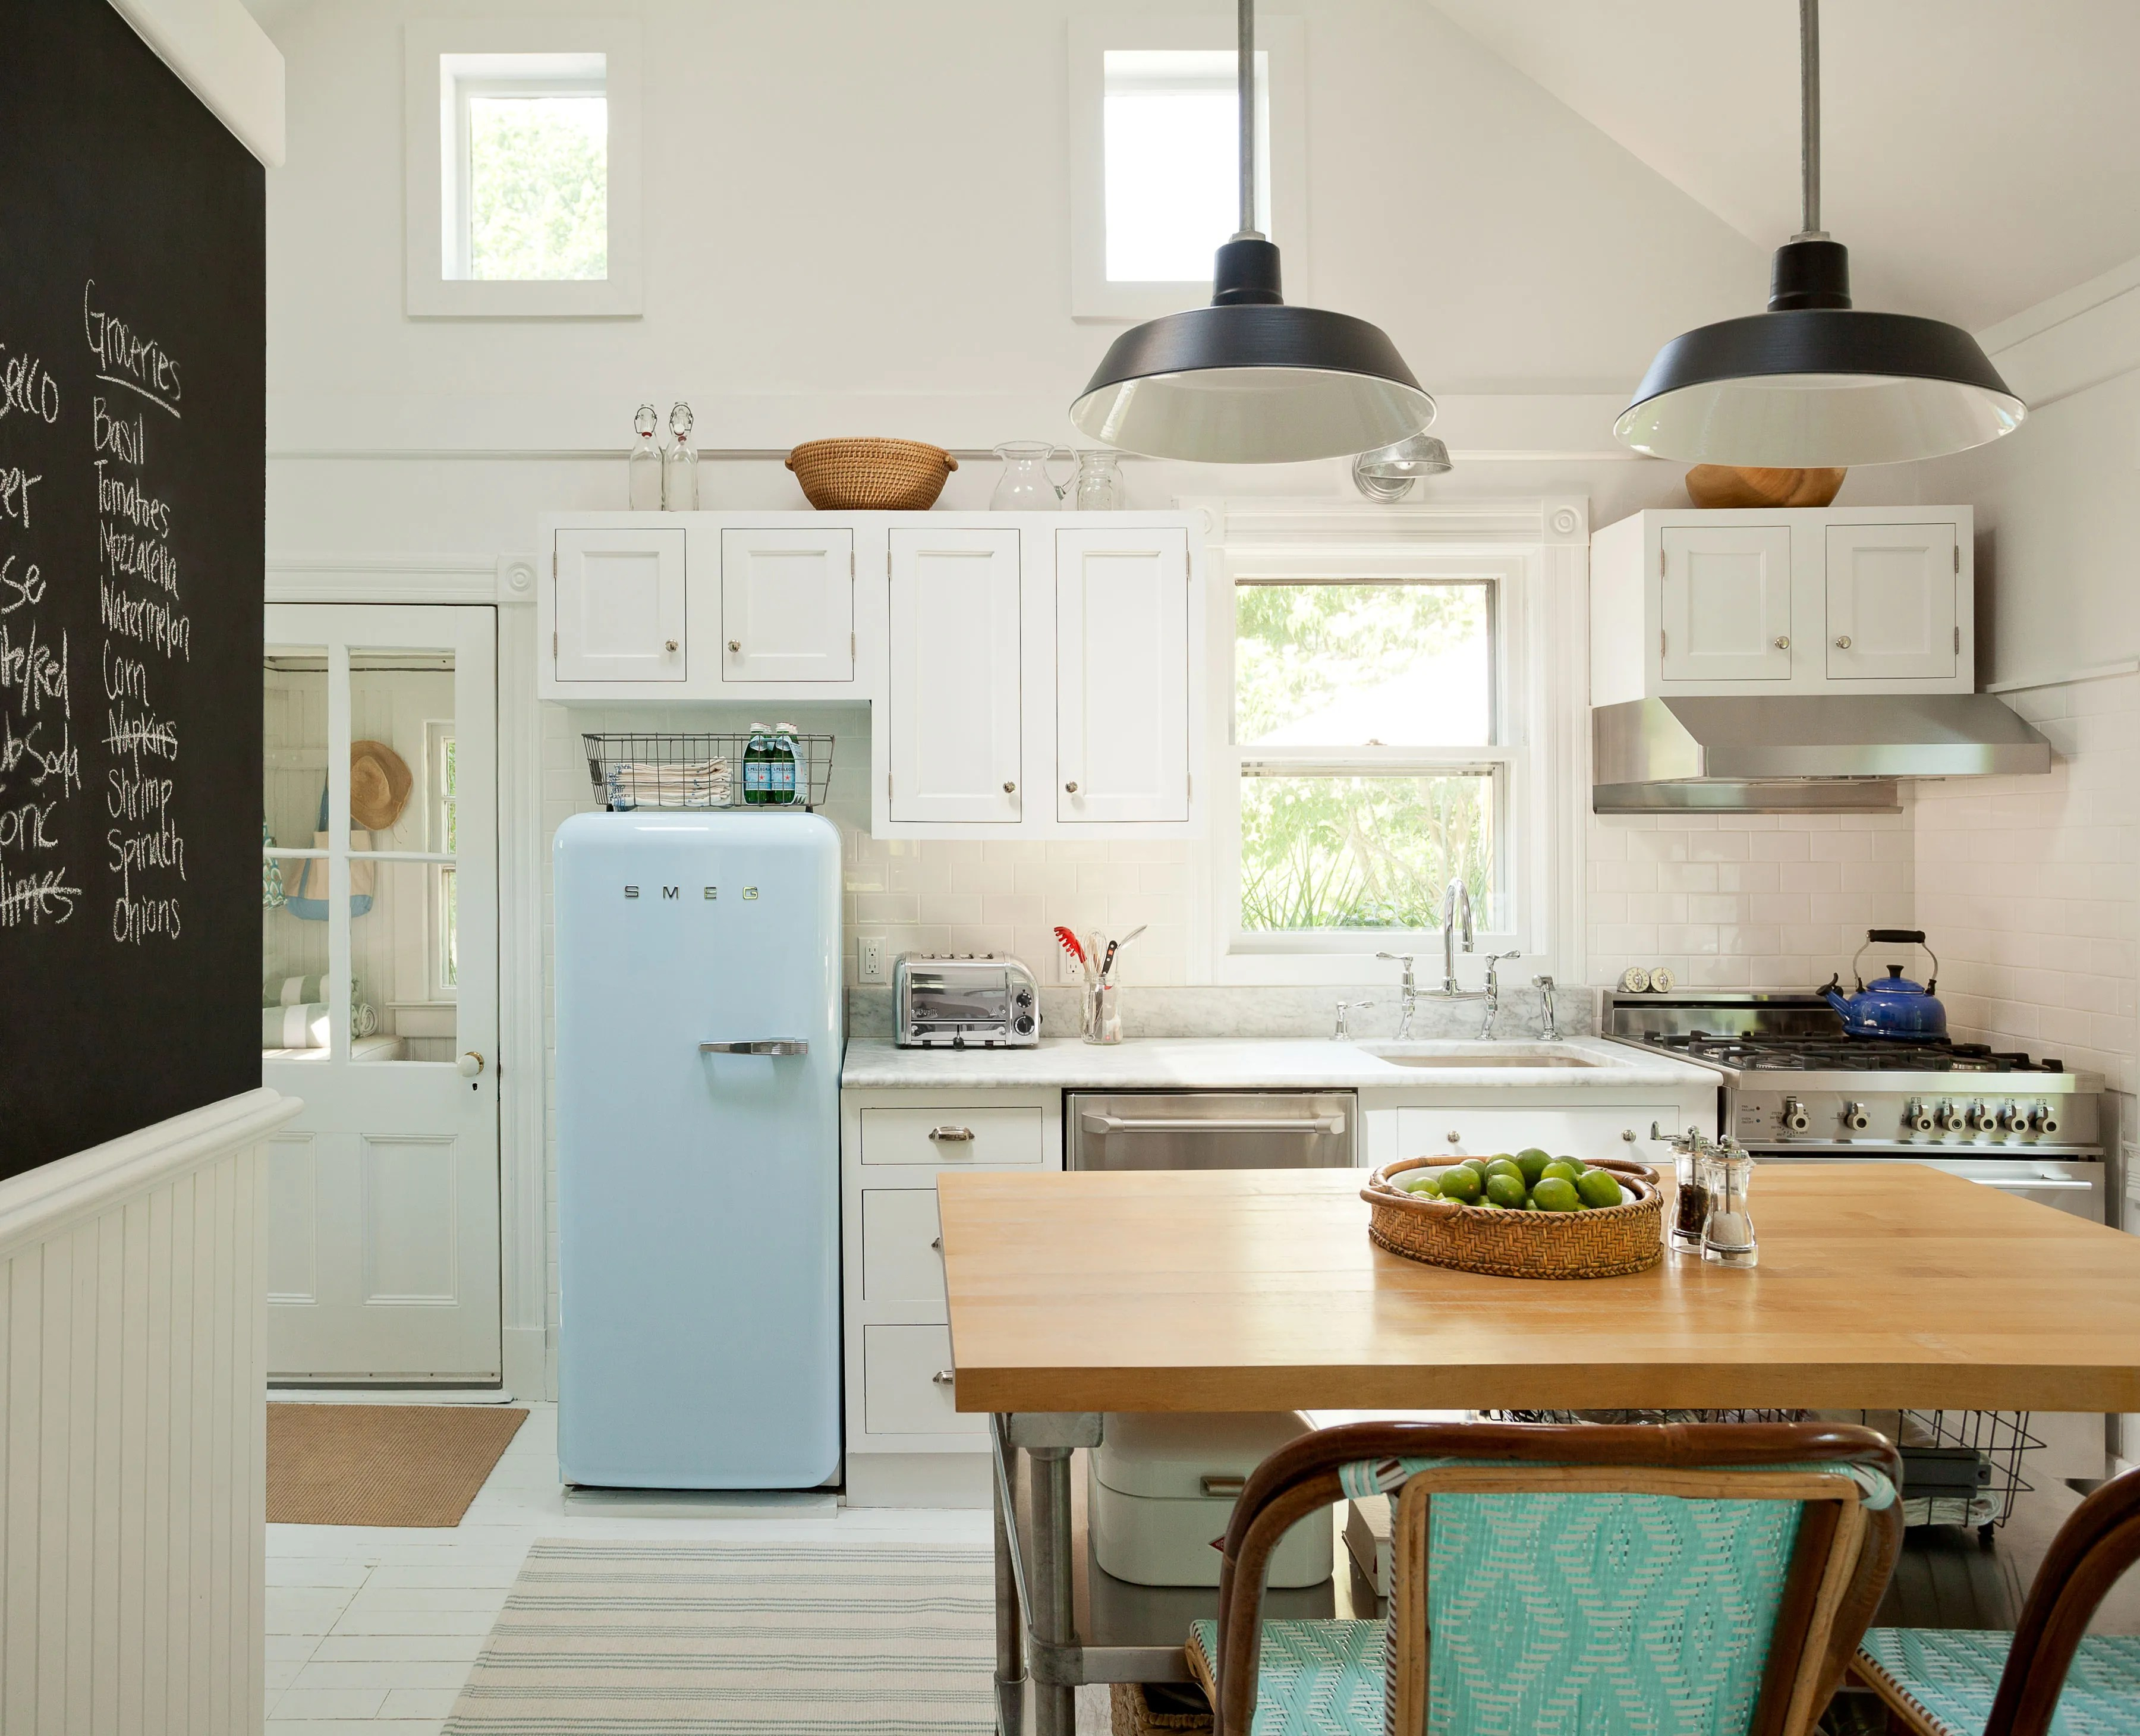 51 Small Kitchen Design Ideas That Make The Most Of A Tiny Space Architectural Digest